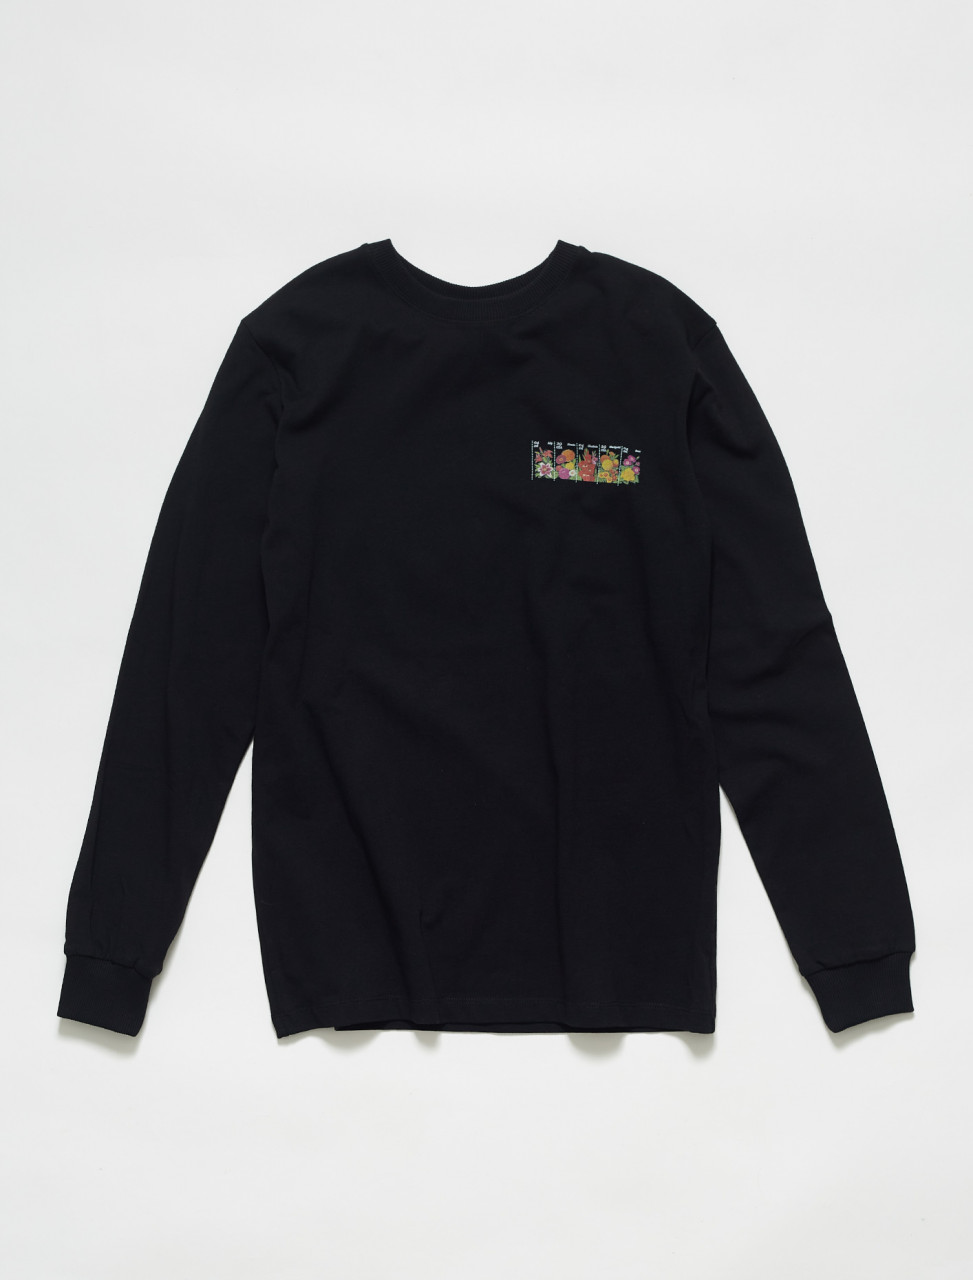 159-1001-B SOULLAND BODEGA ROSE BOAS LS T SHIRT BLACK